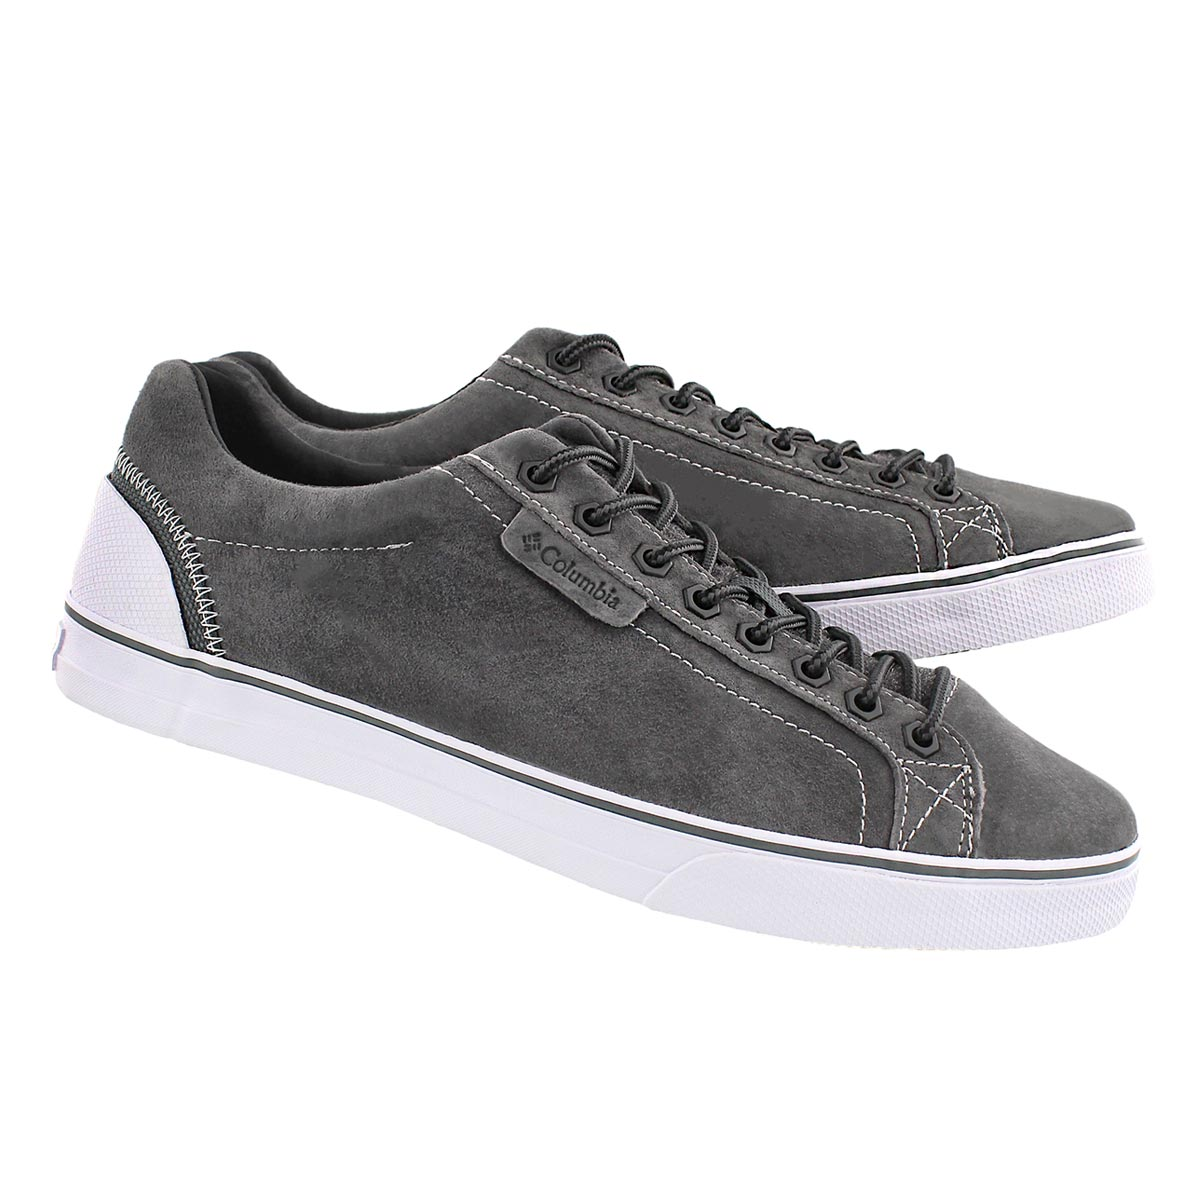 Mns Vulc Camp 4 Winter gry casual oxford